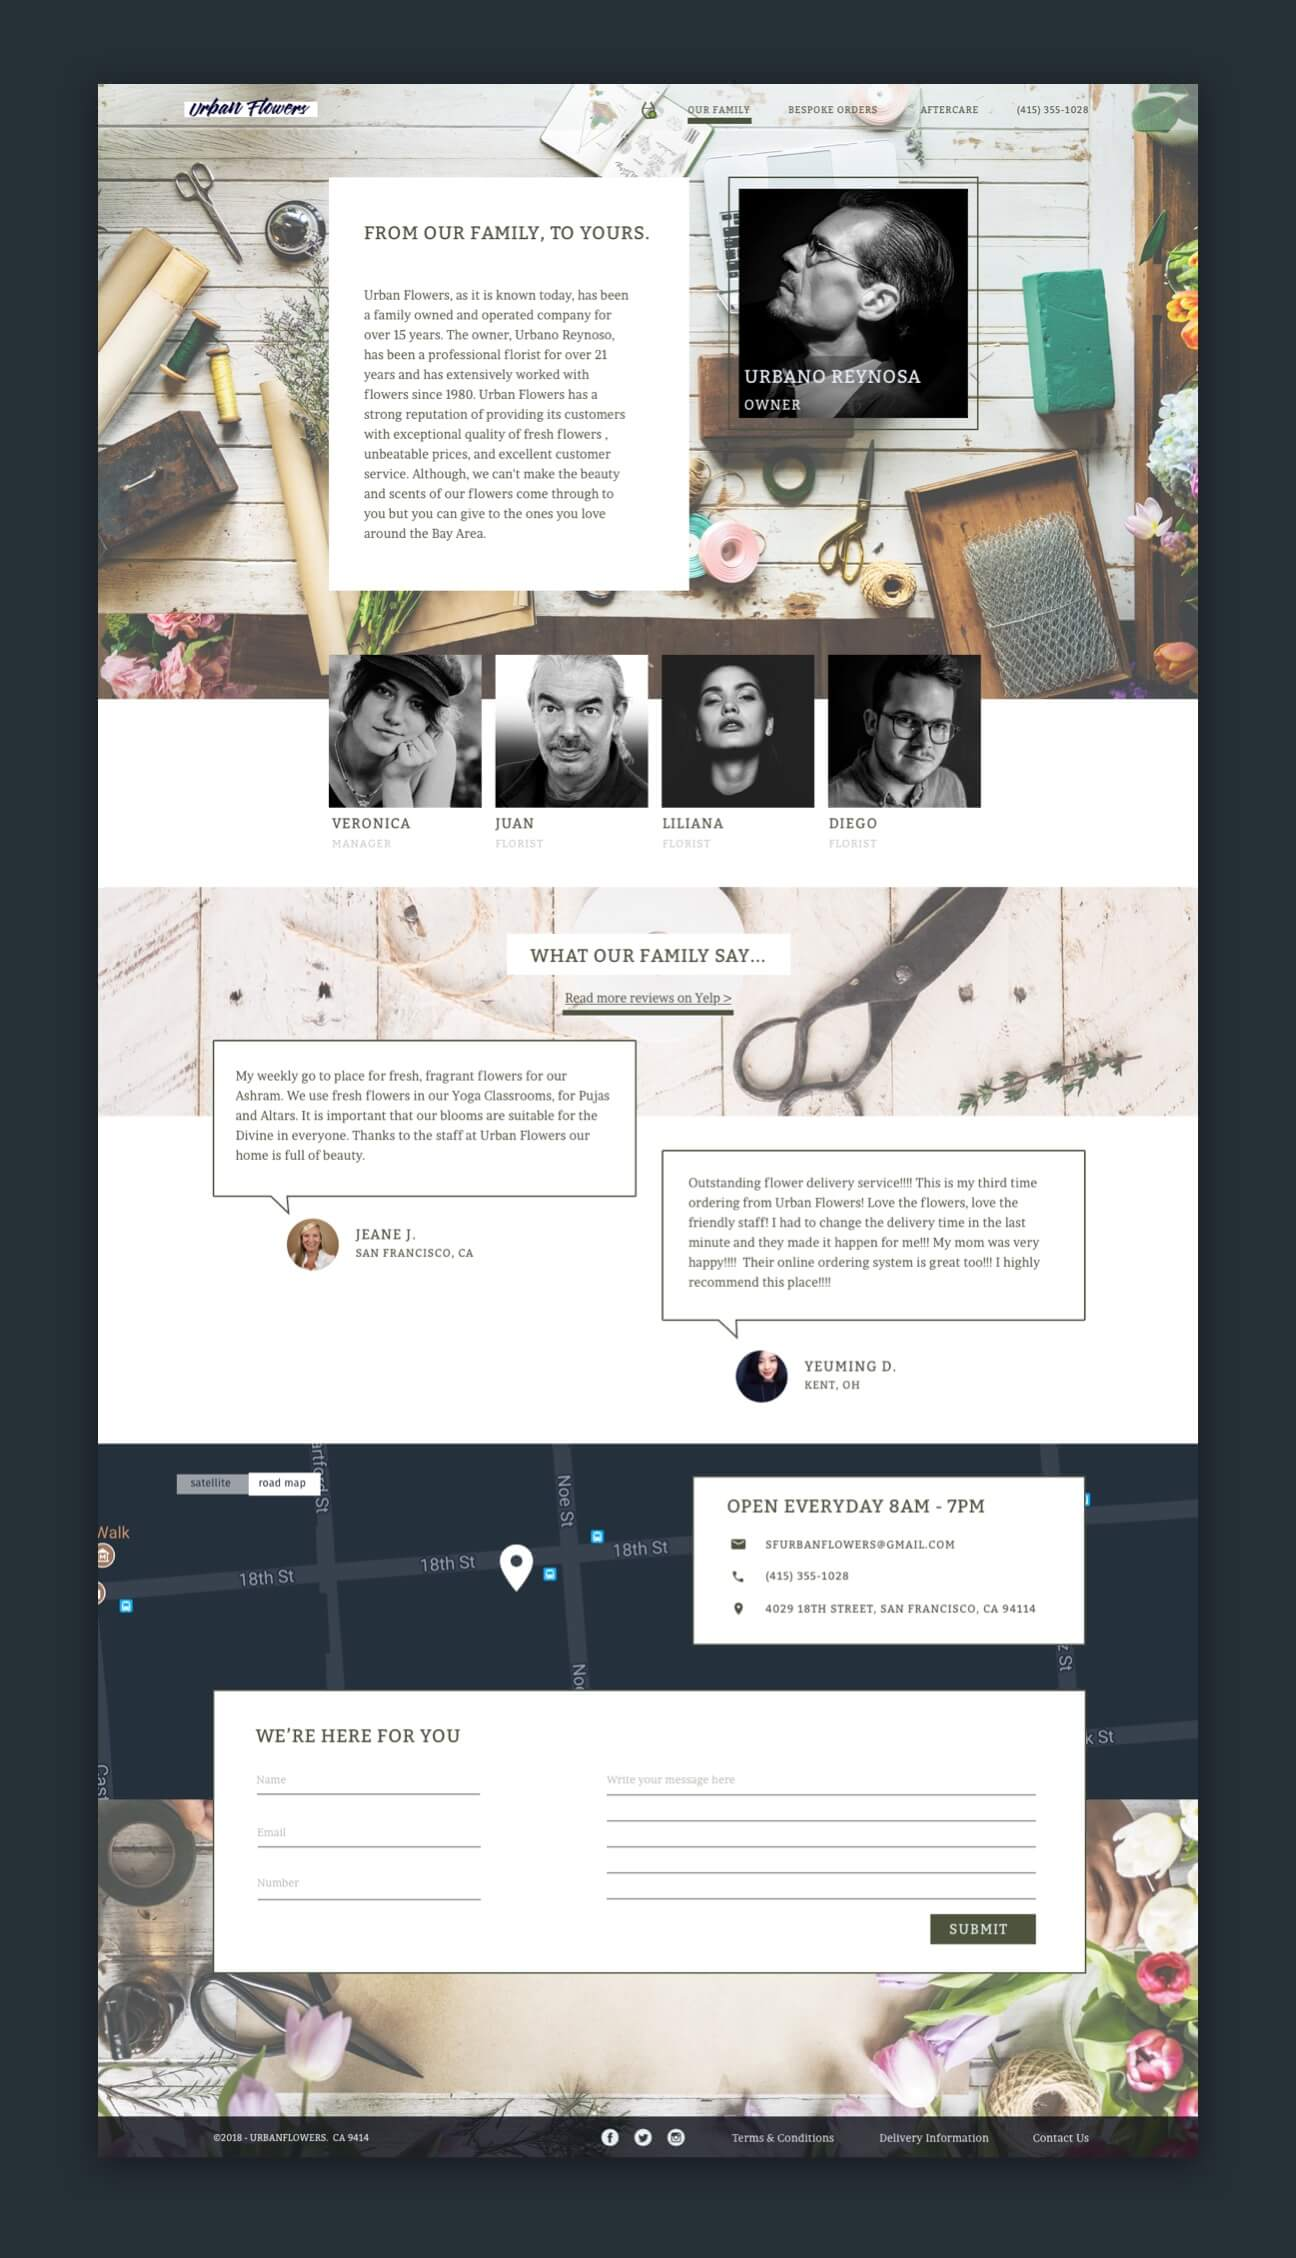 The About page of the redesigned website